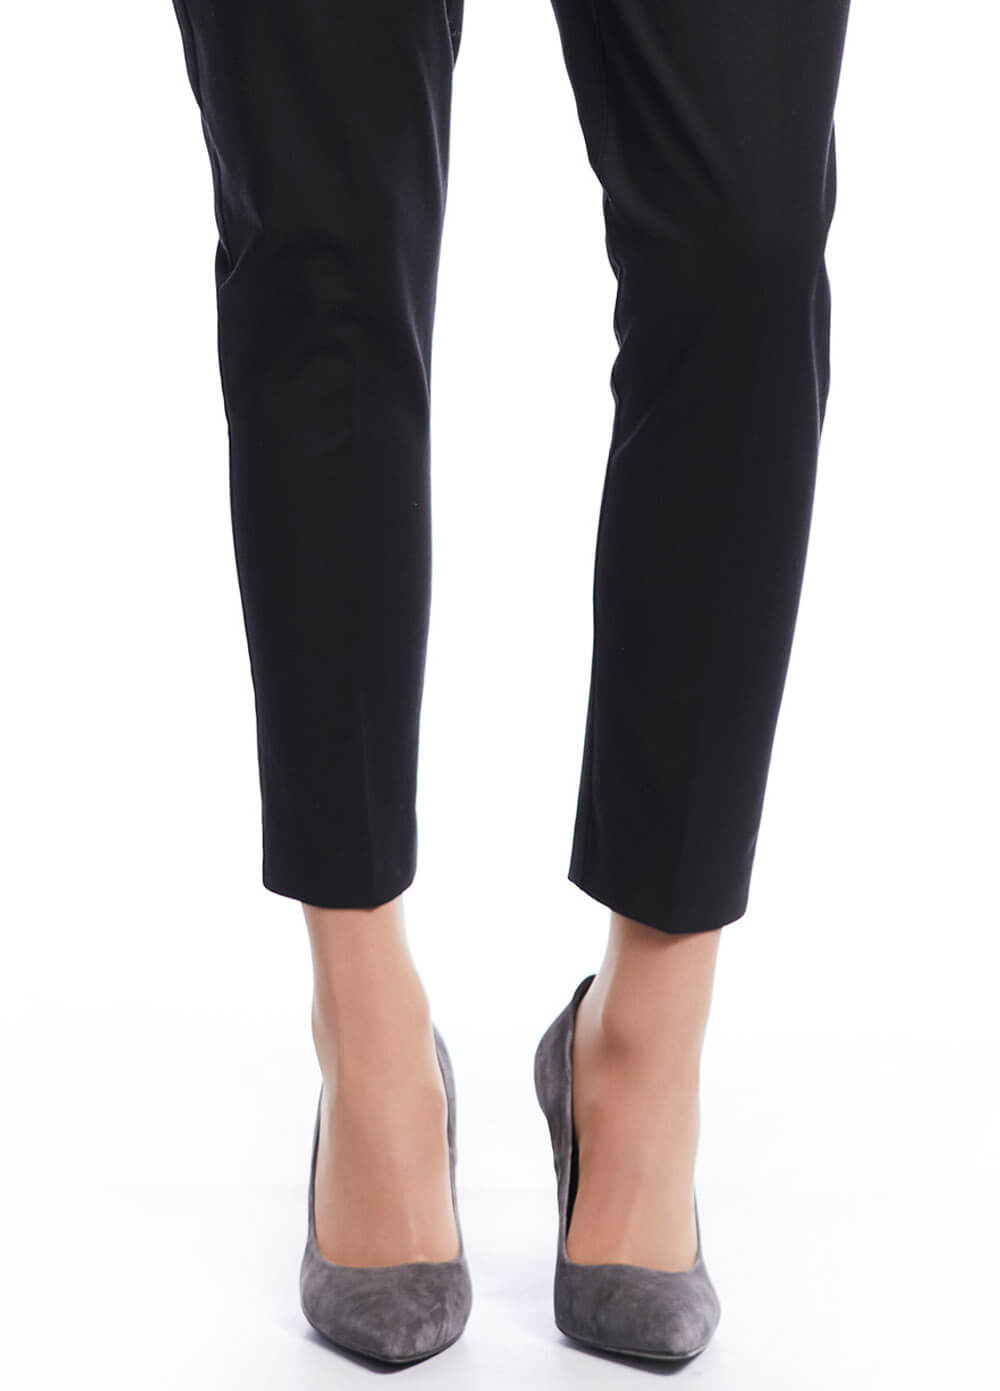 Black Maternity Business Trousers by Queen mum